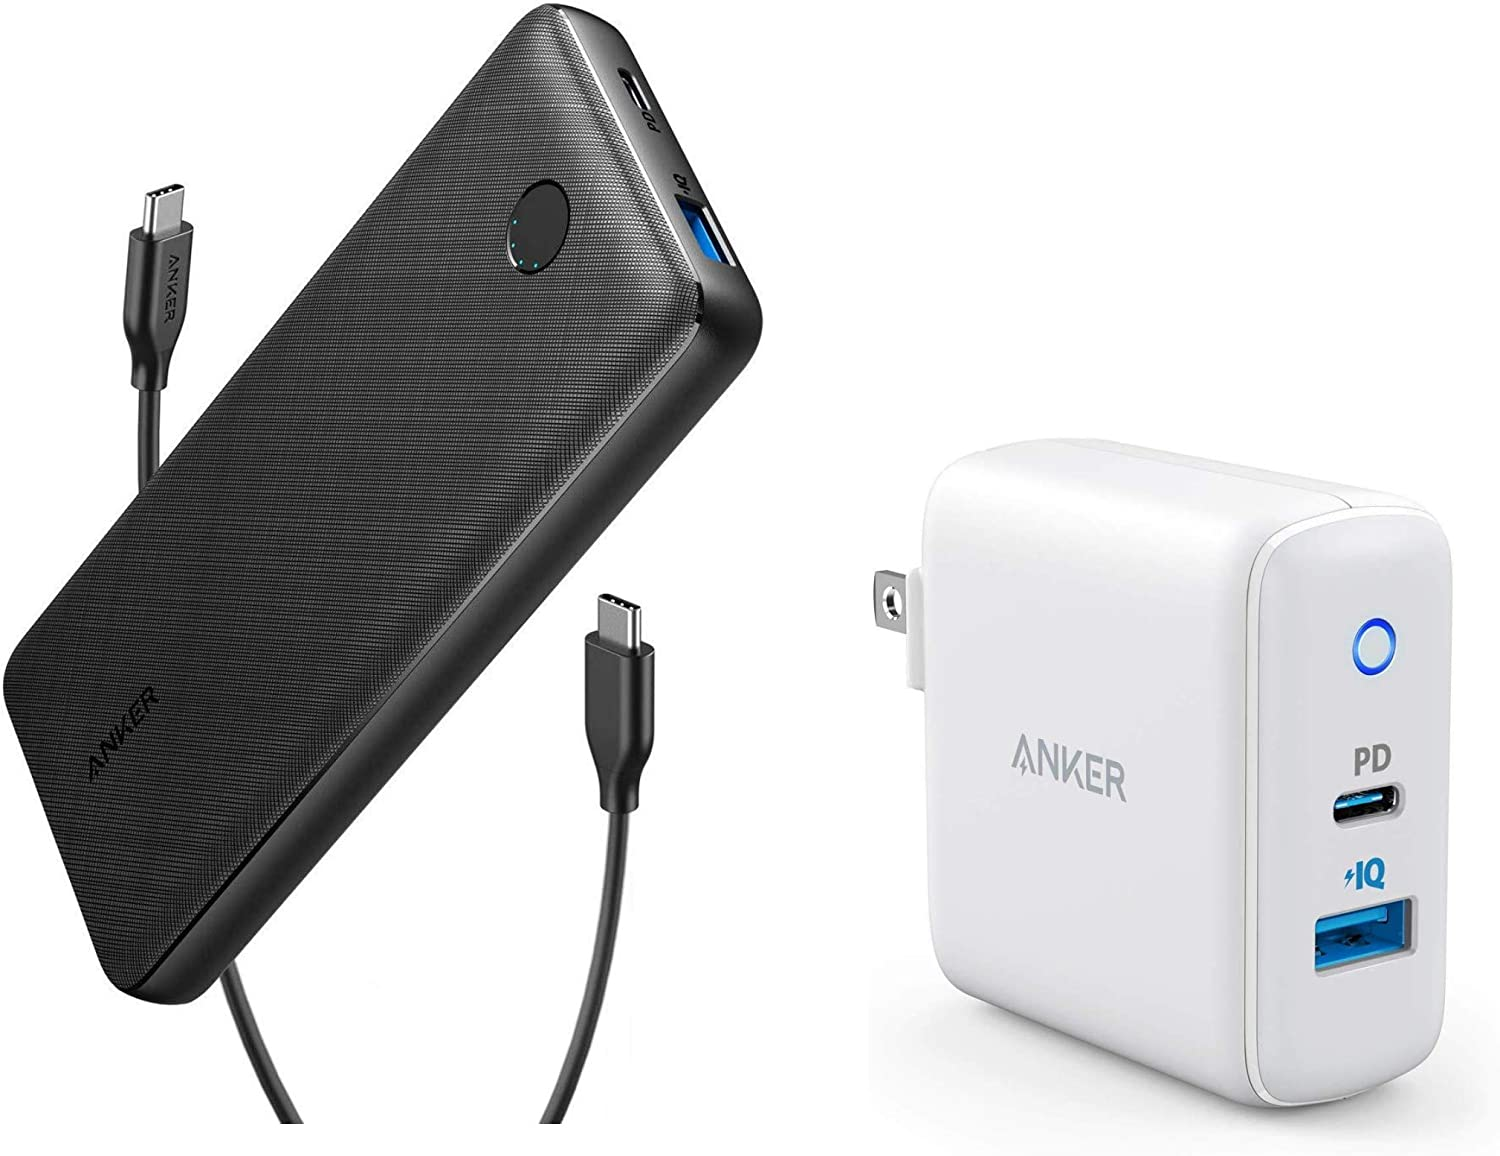 Anker PowerCore Essential 20000 PD Portable Charger Compatible with iPhone 12//12 Pro // 12 Pro Max // 8 // X//XR Samsung iPad Pro 2018 20000mAh USB-C Power Bank with 20W Power Delivery and More